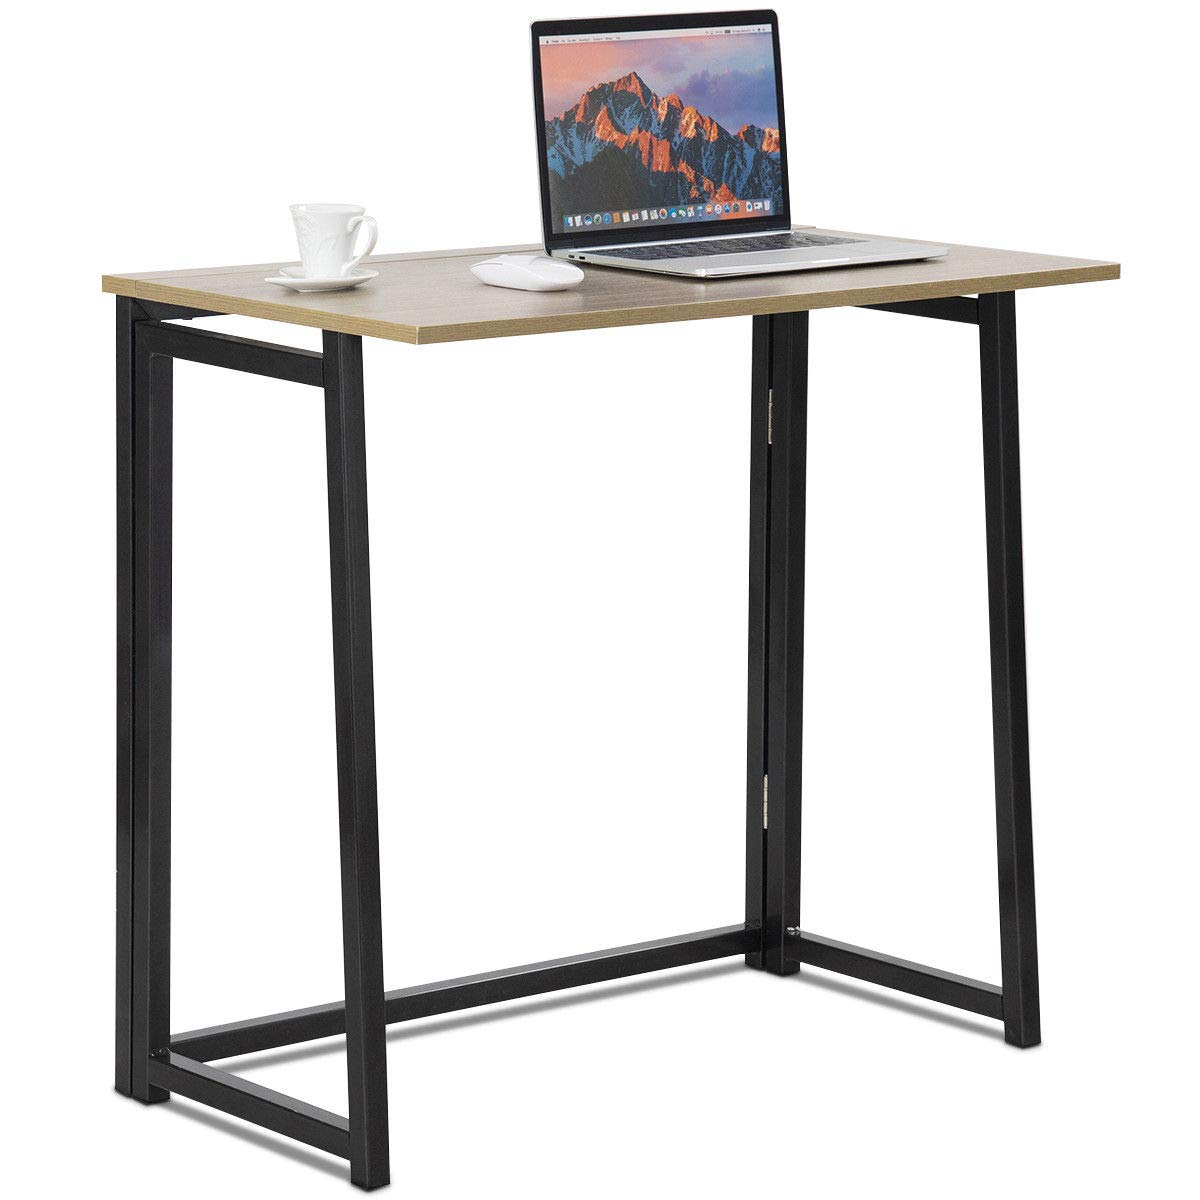 Tangkula Folding Table, Small Foldable Computer Desk, Home Office Laptop Table Writing Desk, Compact Study Reading Table for Small Space, No Assembly Laptop Table (Natural) by Tangkula